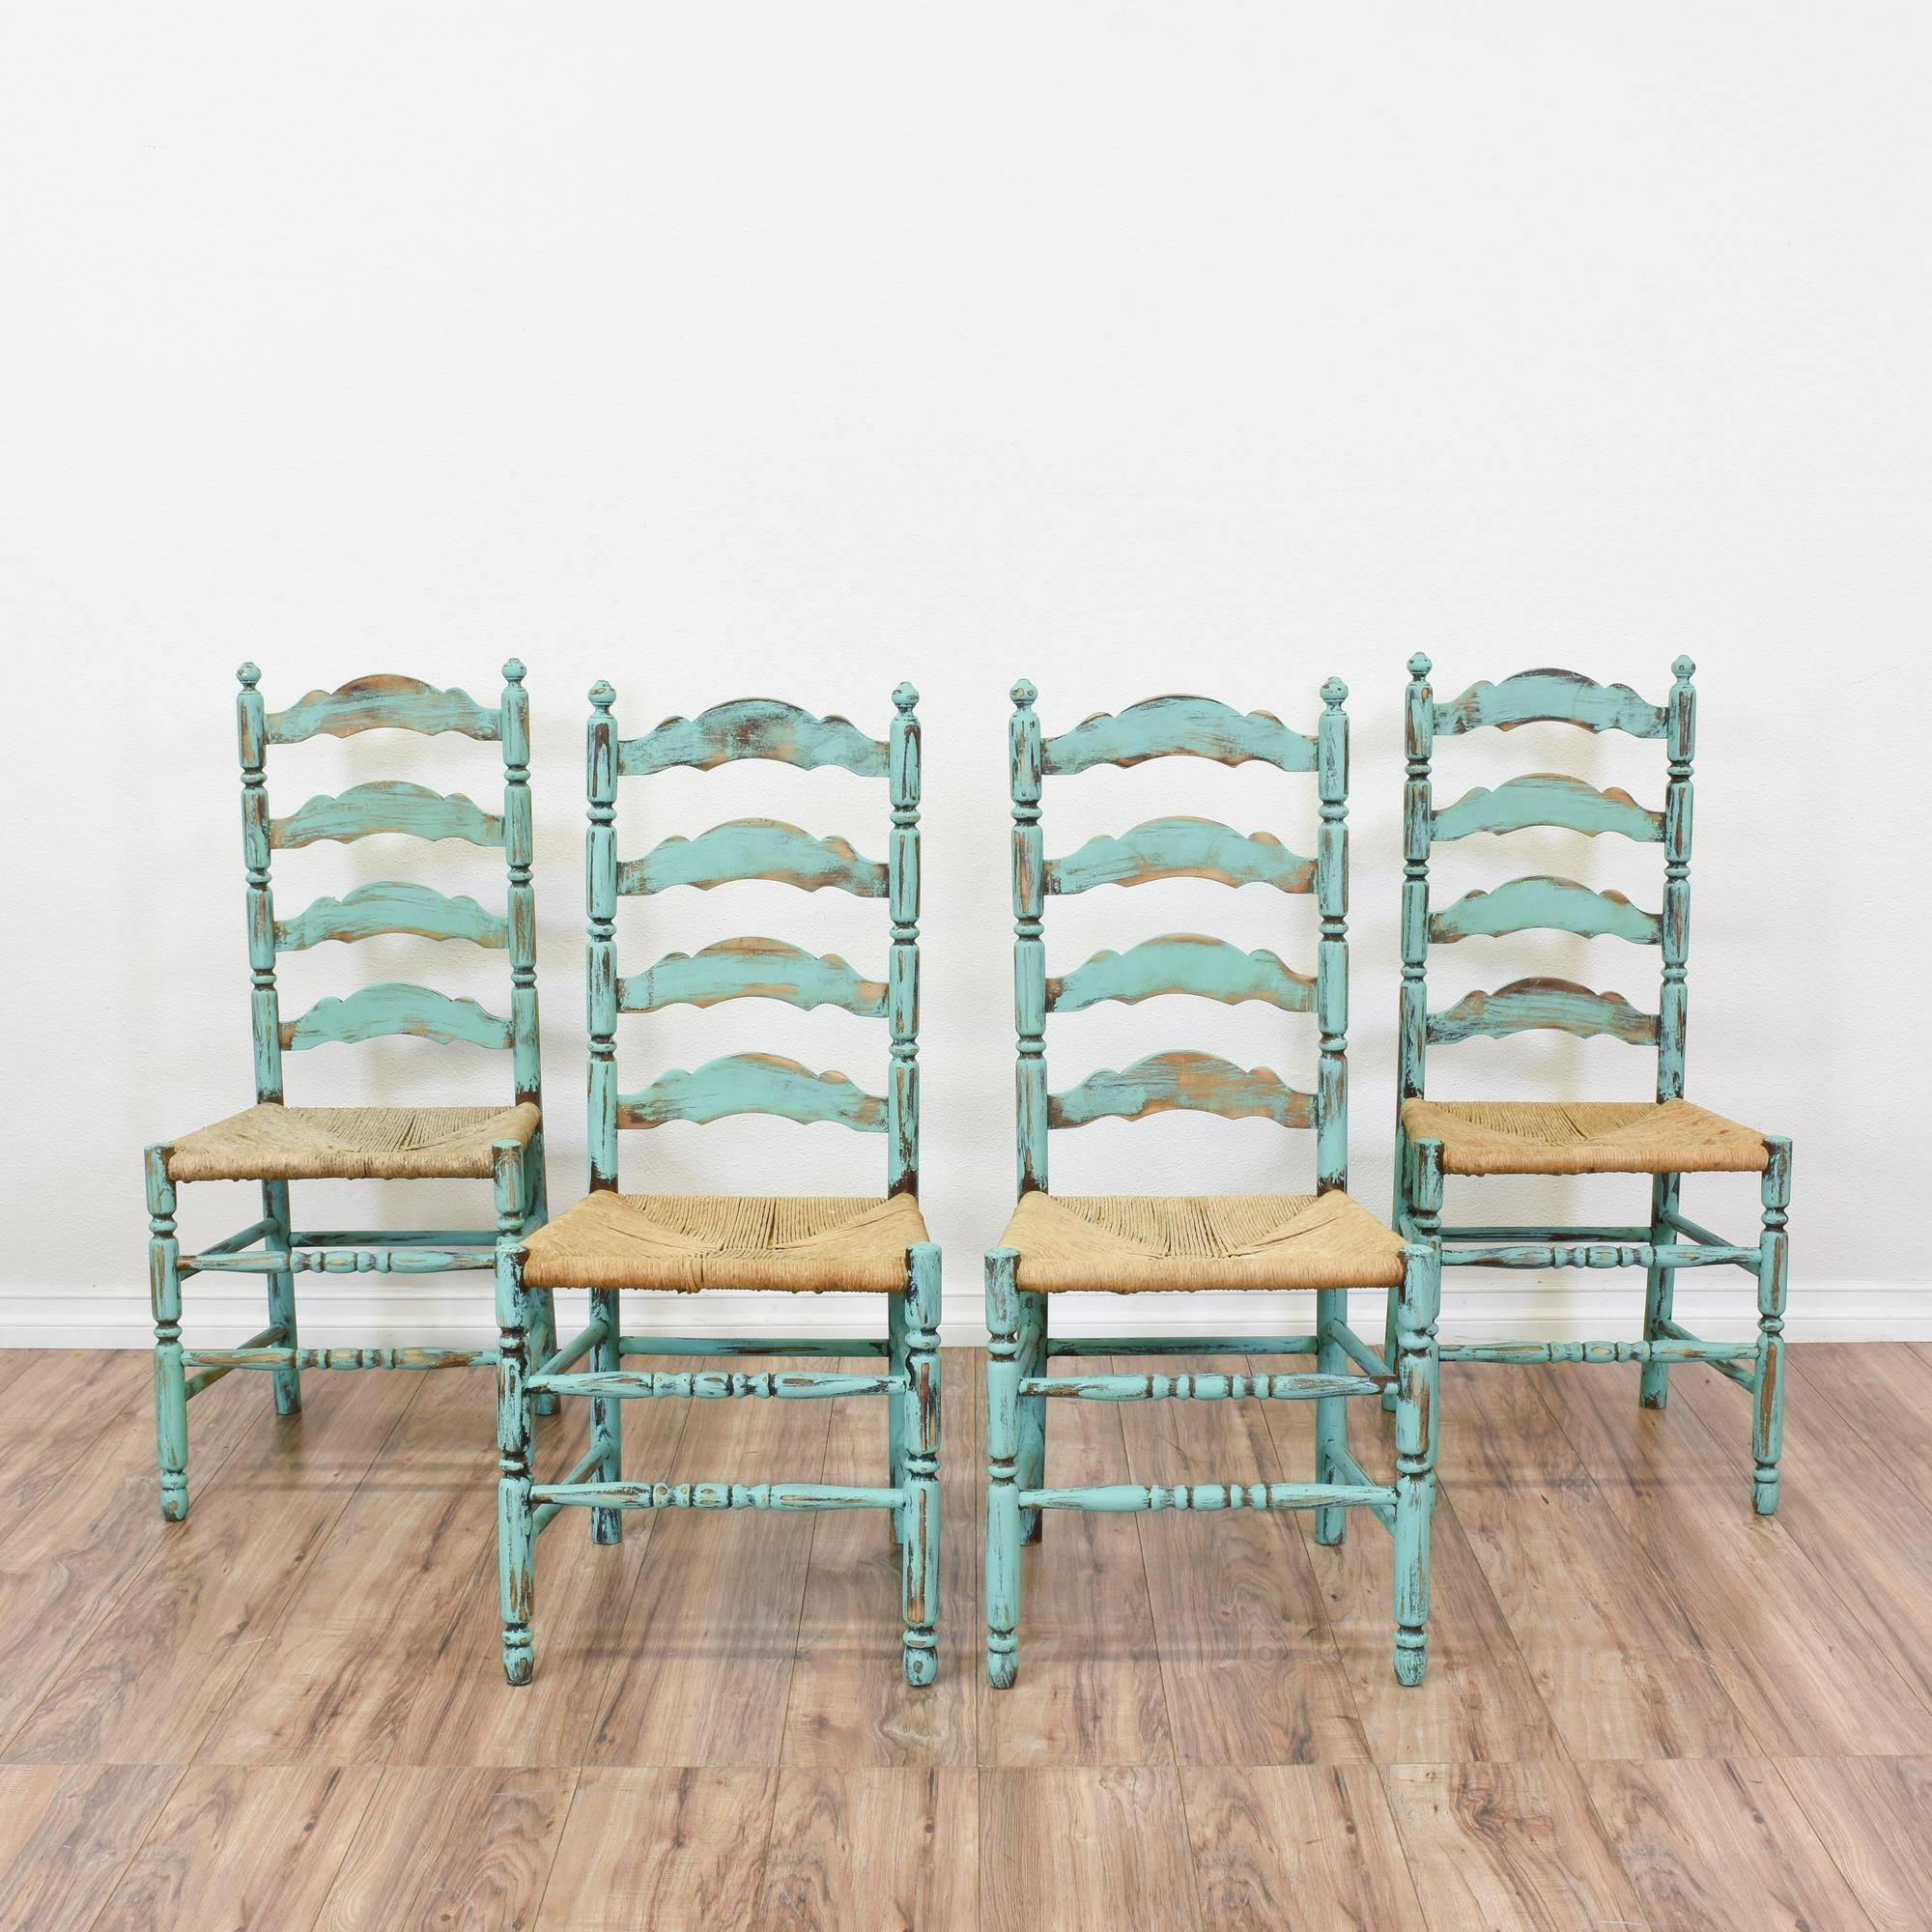 ladder back chair lovesac bean bag this set of 4 shabby chic chairs are featured in a solid wood with distressed light blue chalk paint finish these dining great